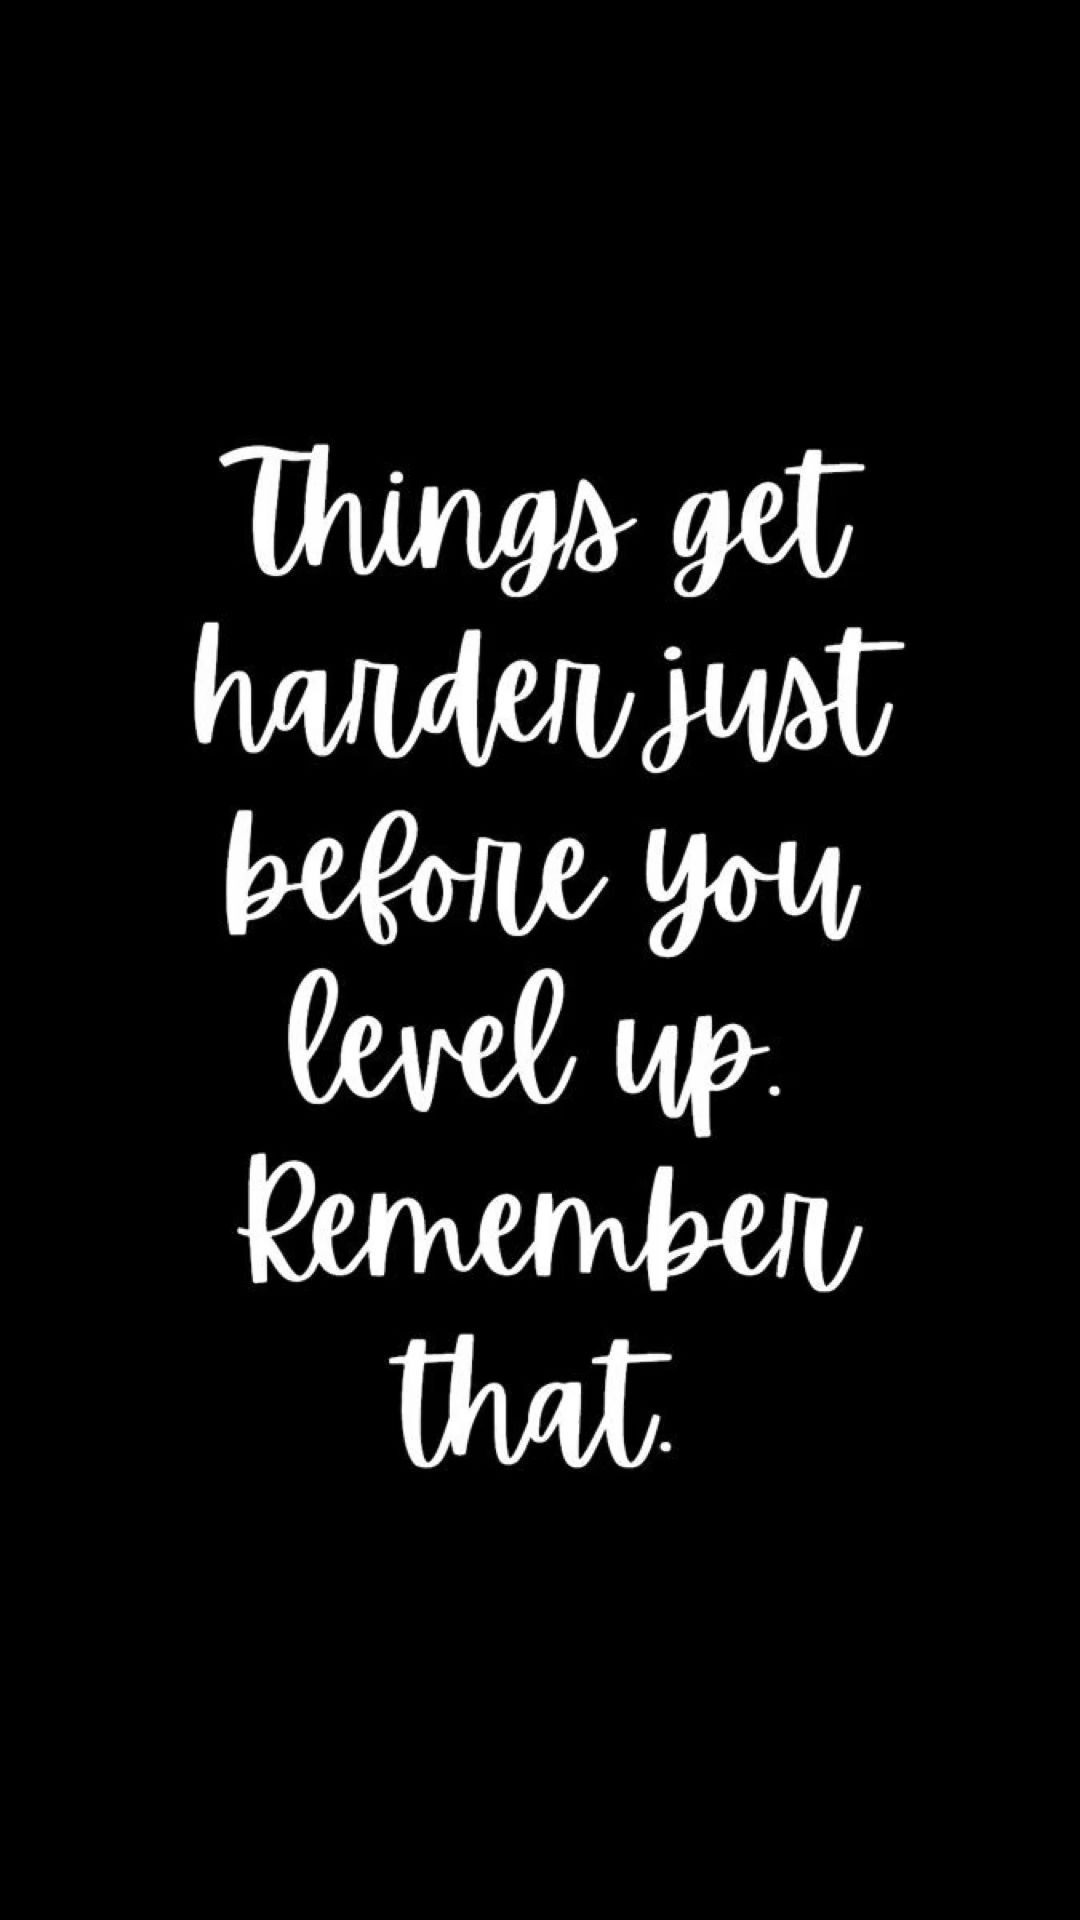 Quotes About Strength and Overcoming Difficult Times   missmakeupmagpie.com